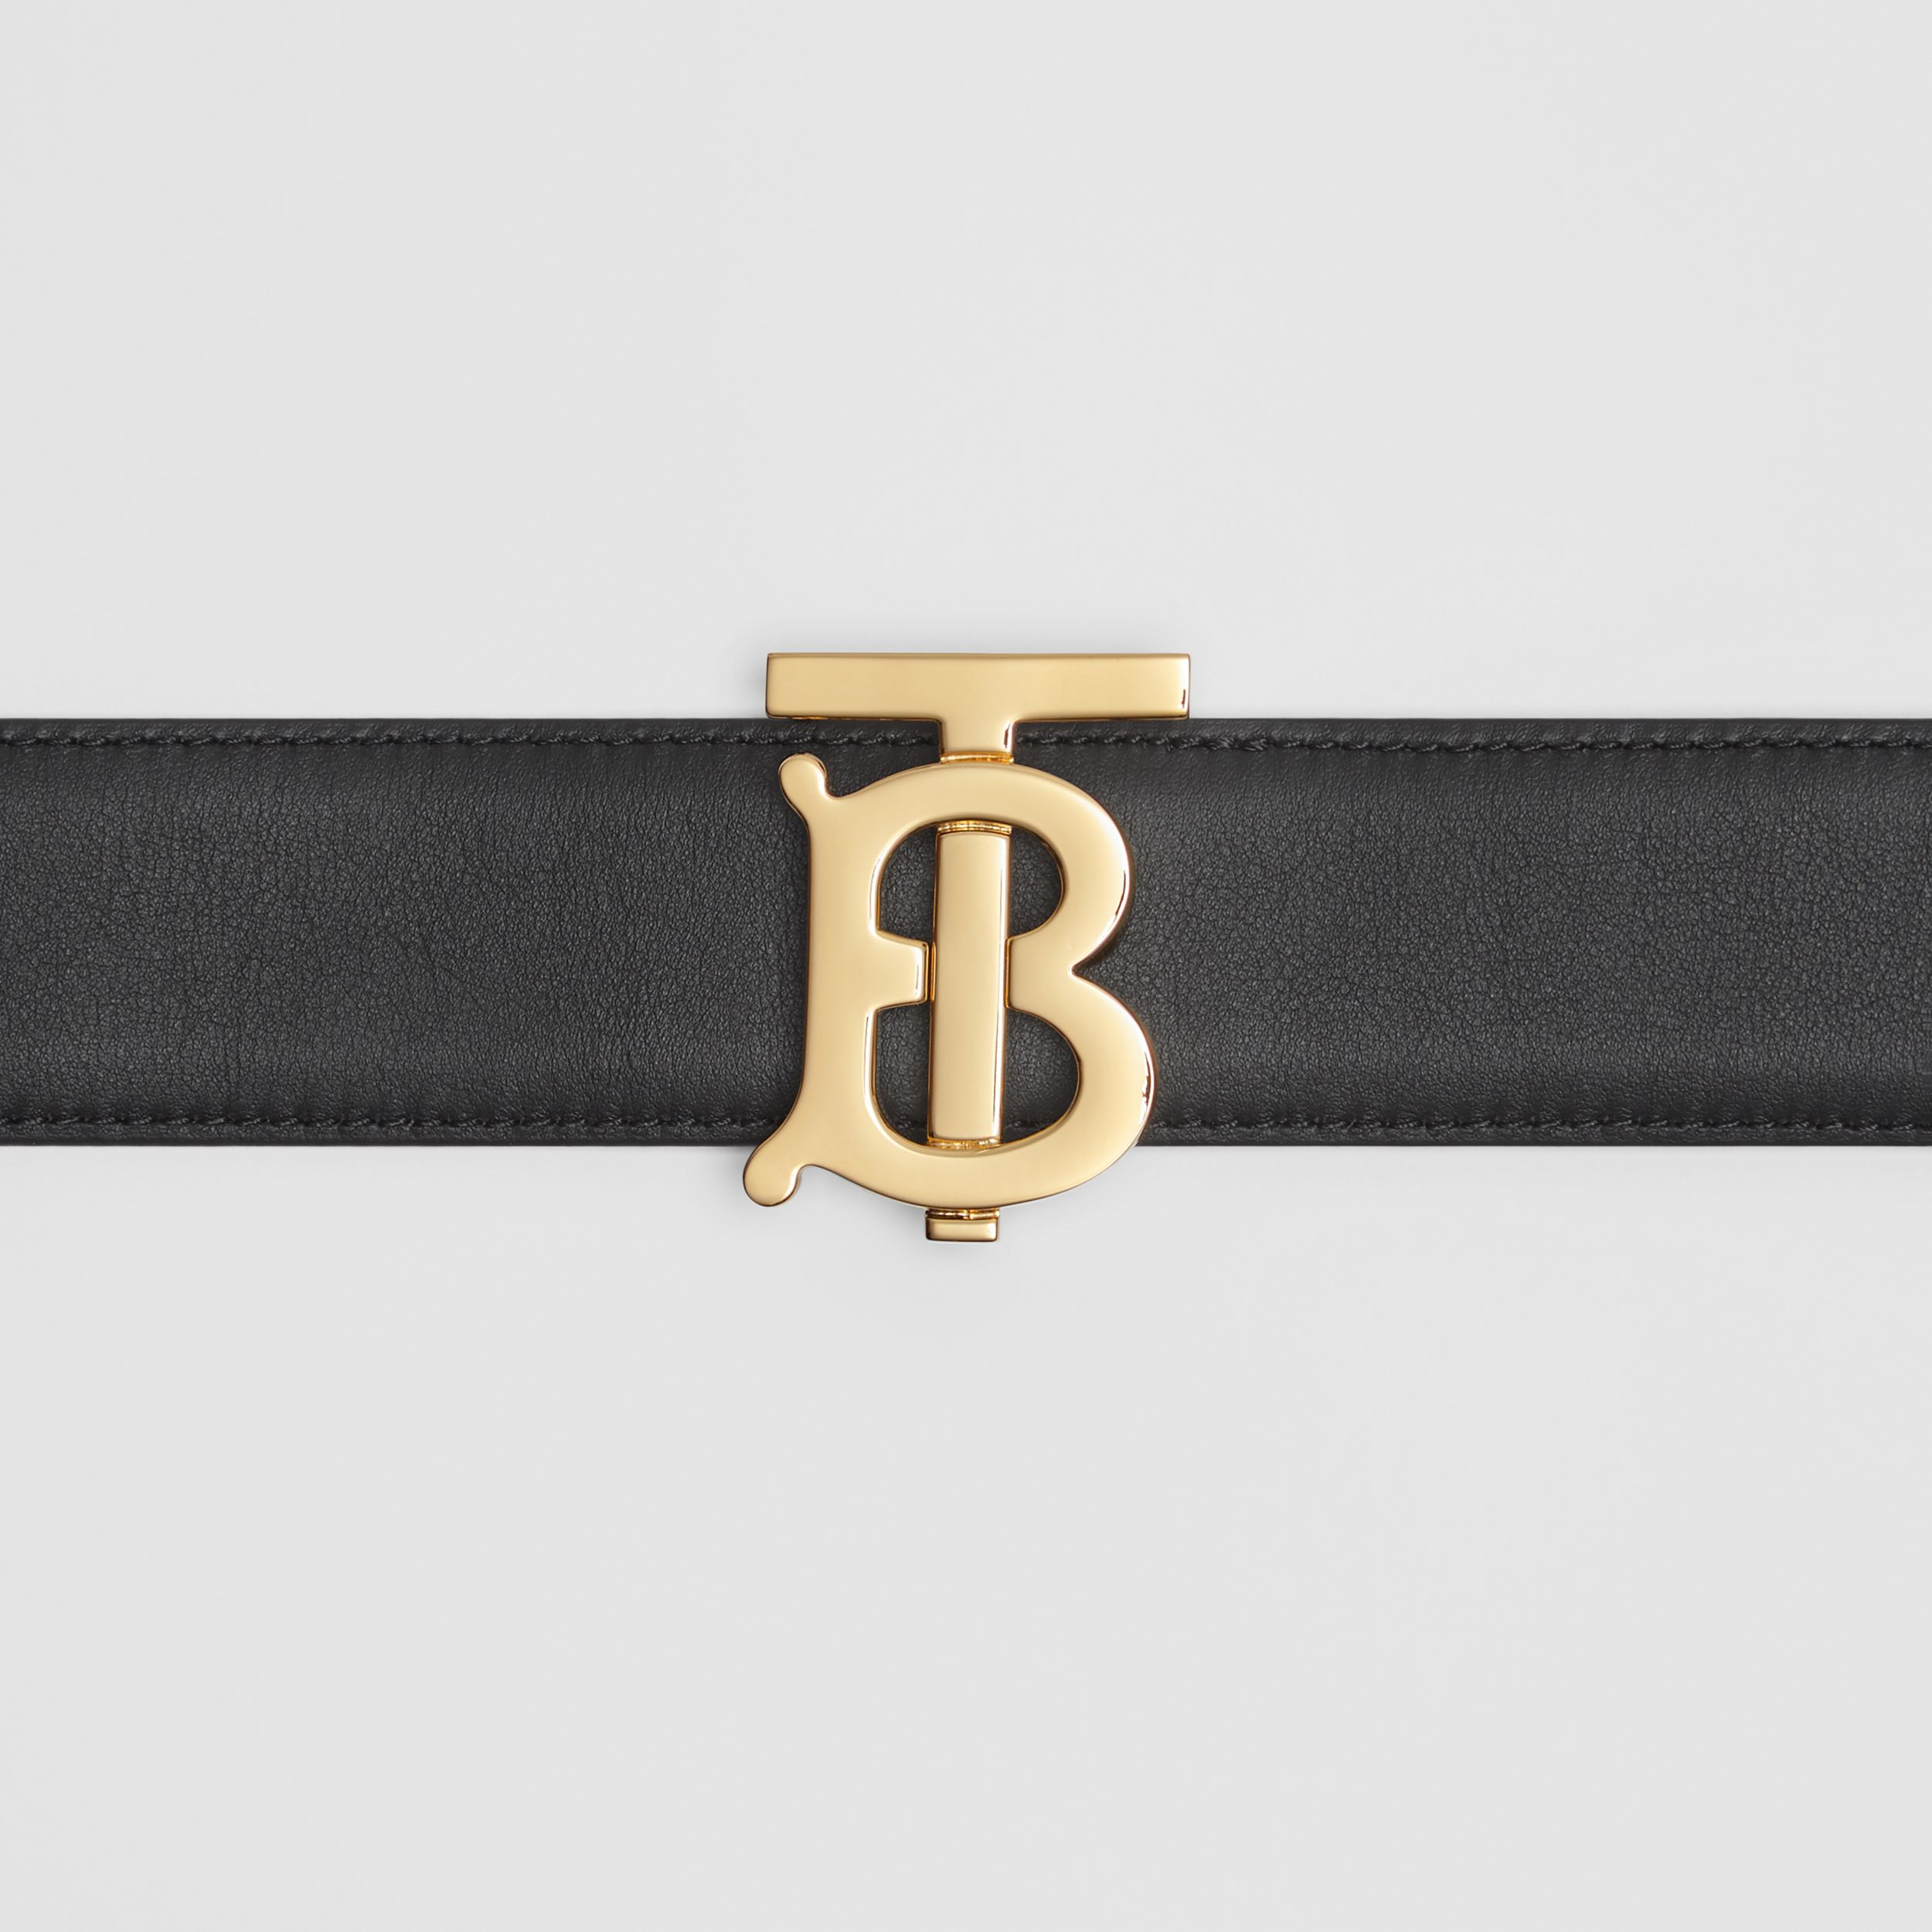 Reversible Monogram Motif Leather Belt in Black/malt Brown - Women | Burberry United Kingdom - 2